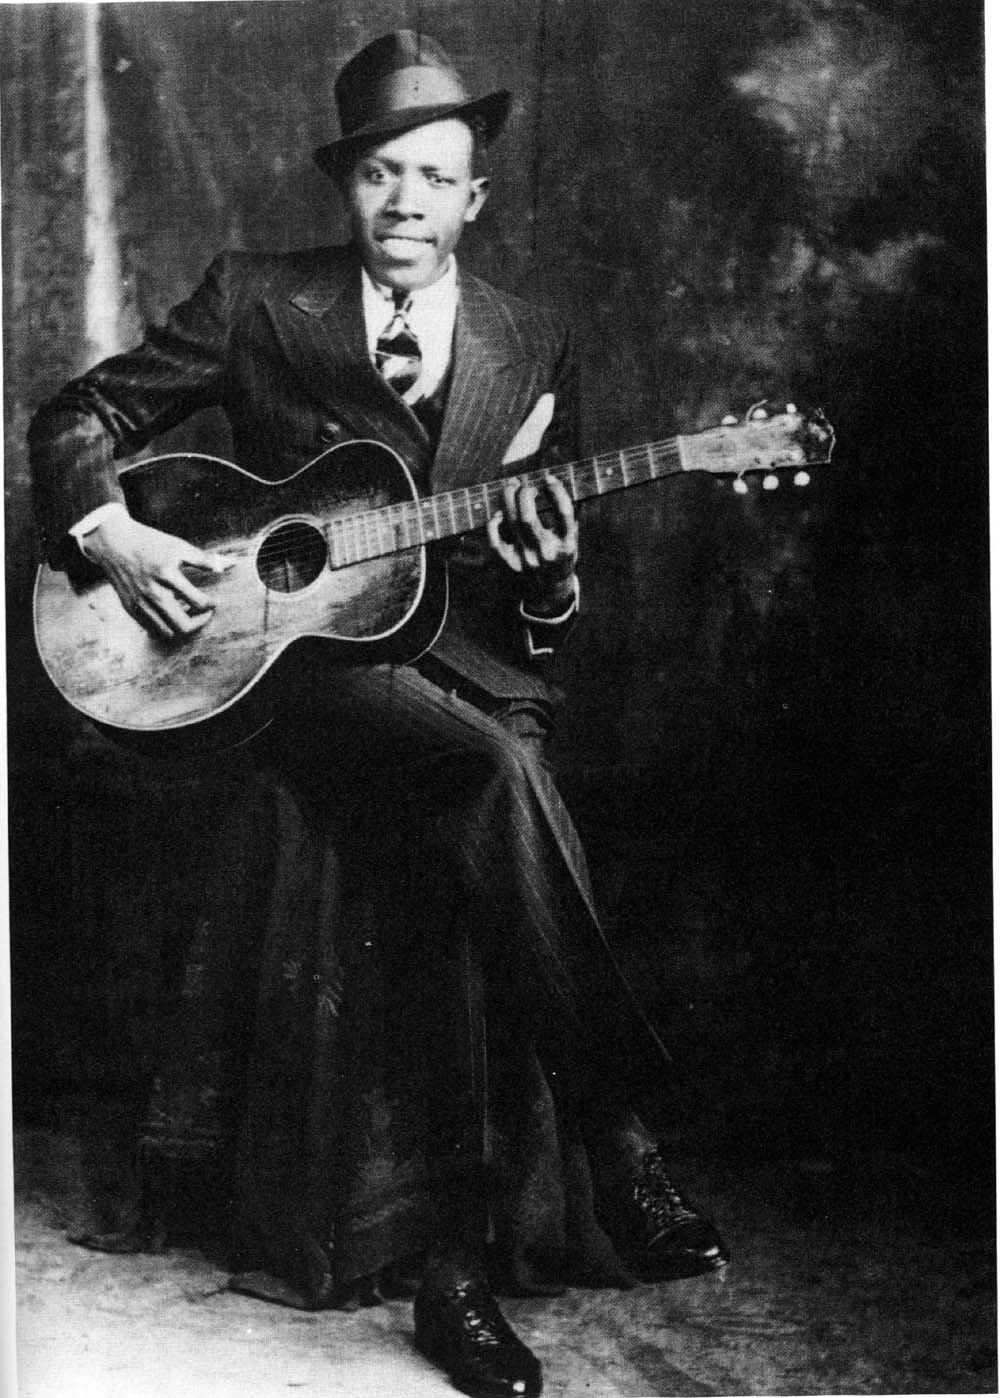 The great blues player Robert Johnson had two recording sessions in Texas. - One at the Gunter Hotel in San Antonio on November 23, 1936, and one that spanned two different days in June 1937 of recording at 508 Park, Dallas. Elijah Wald, author of Escaping the Delta, discusses the second recordings.Download the full list of artists who recorded in 1937.